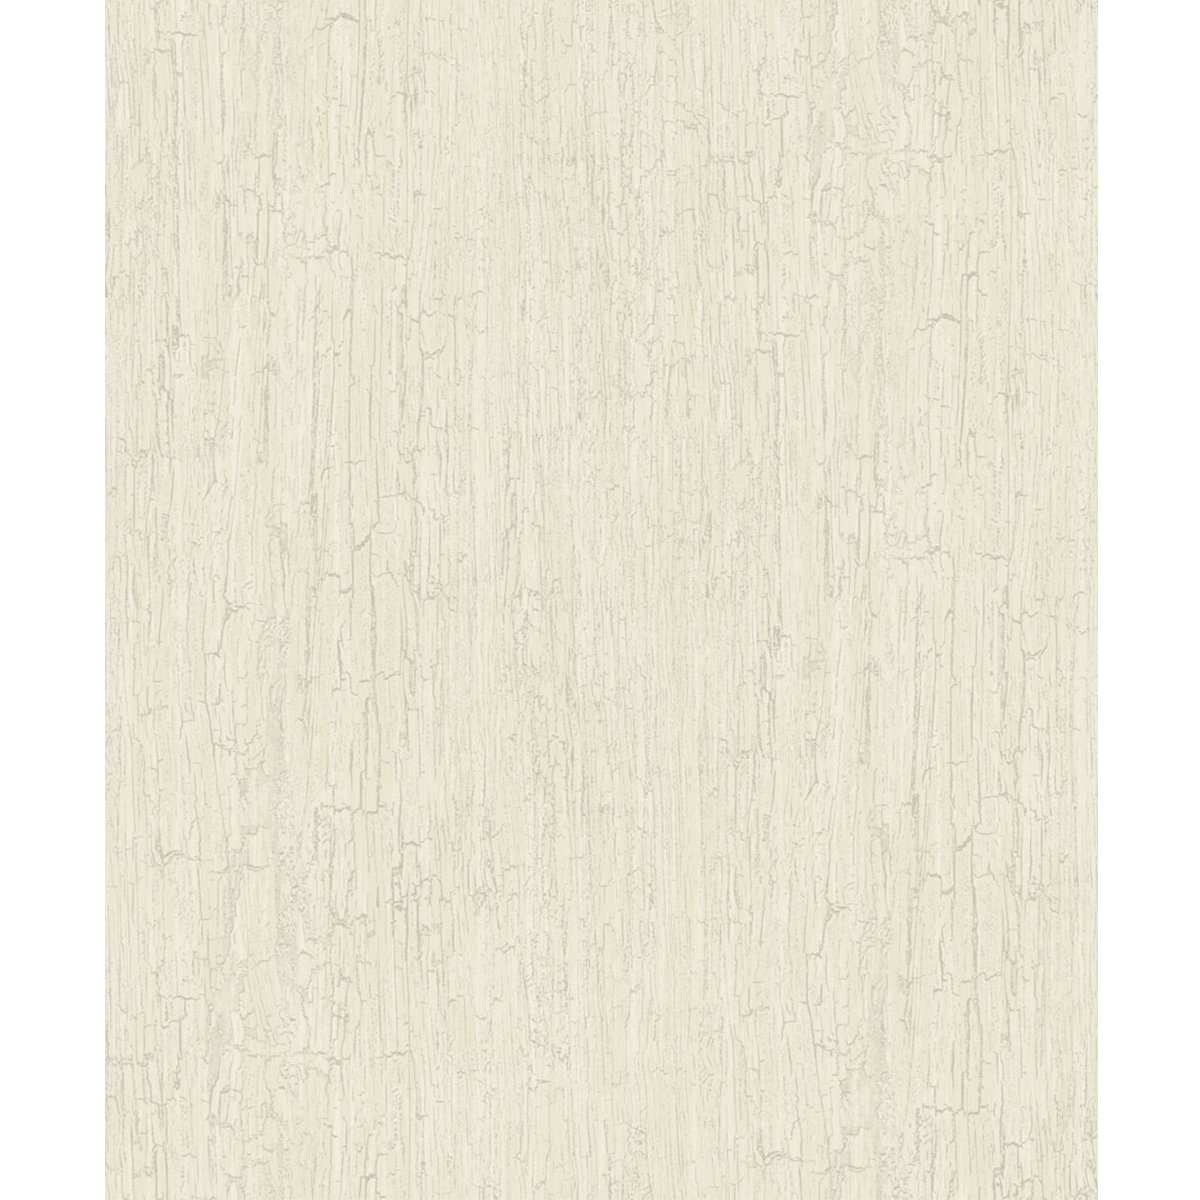 Cole & Son Crackle Behang - 1071152